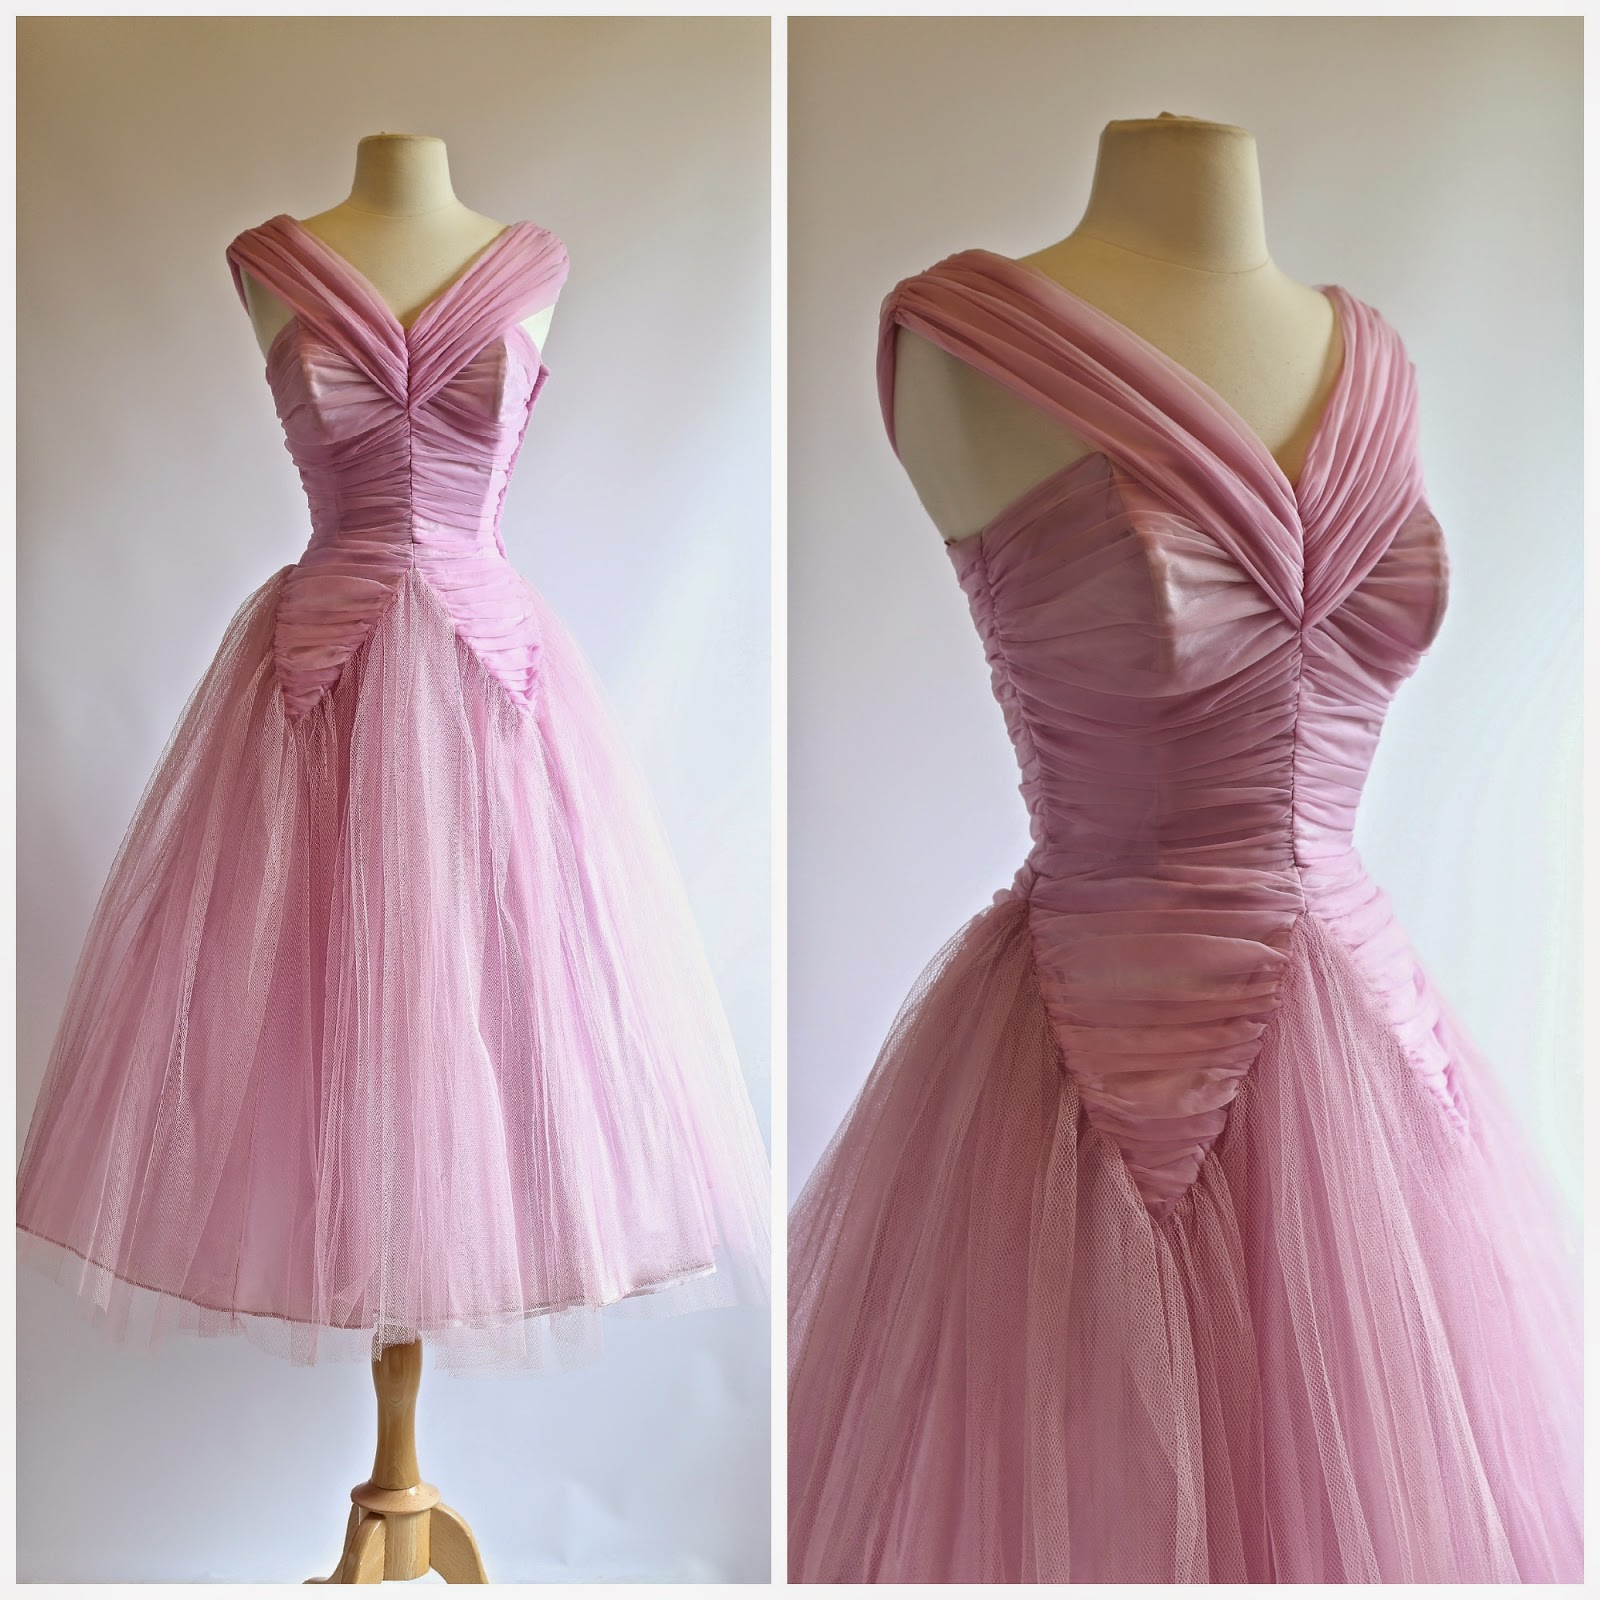 e9652c2960c Etsy Vintage Prom Dresses – Fashion dresses